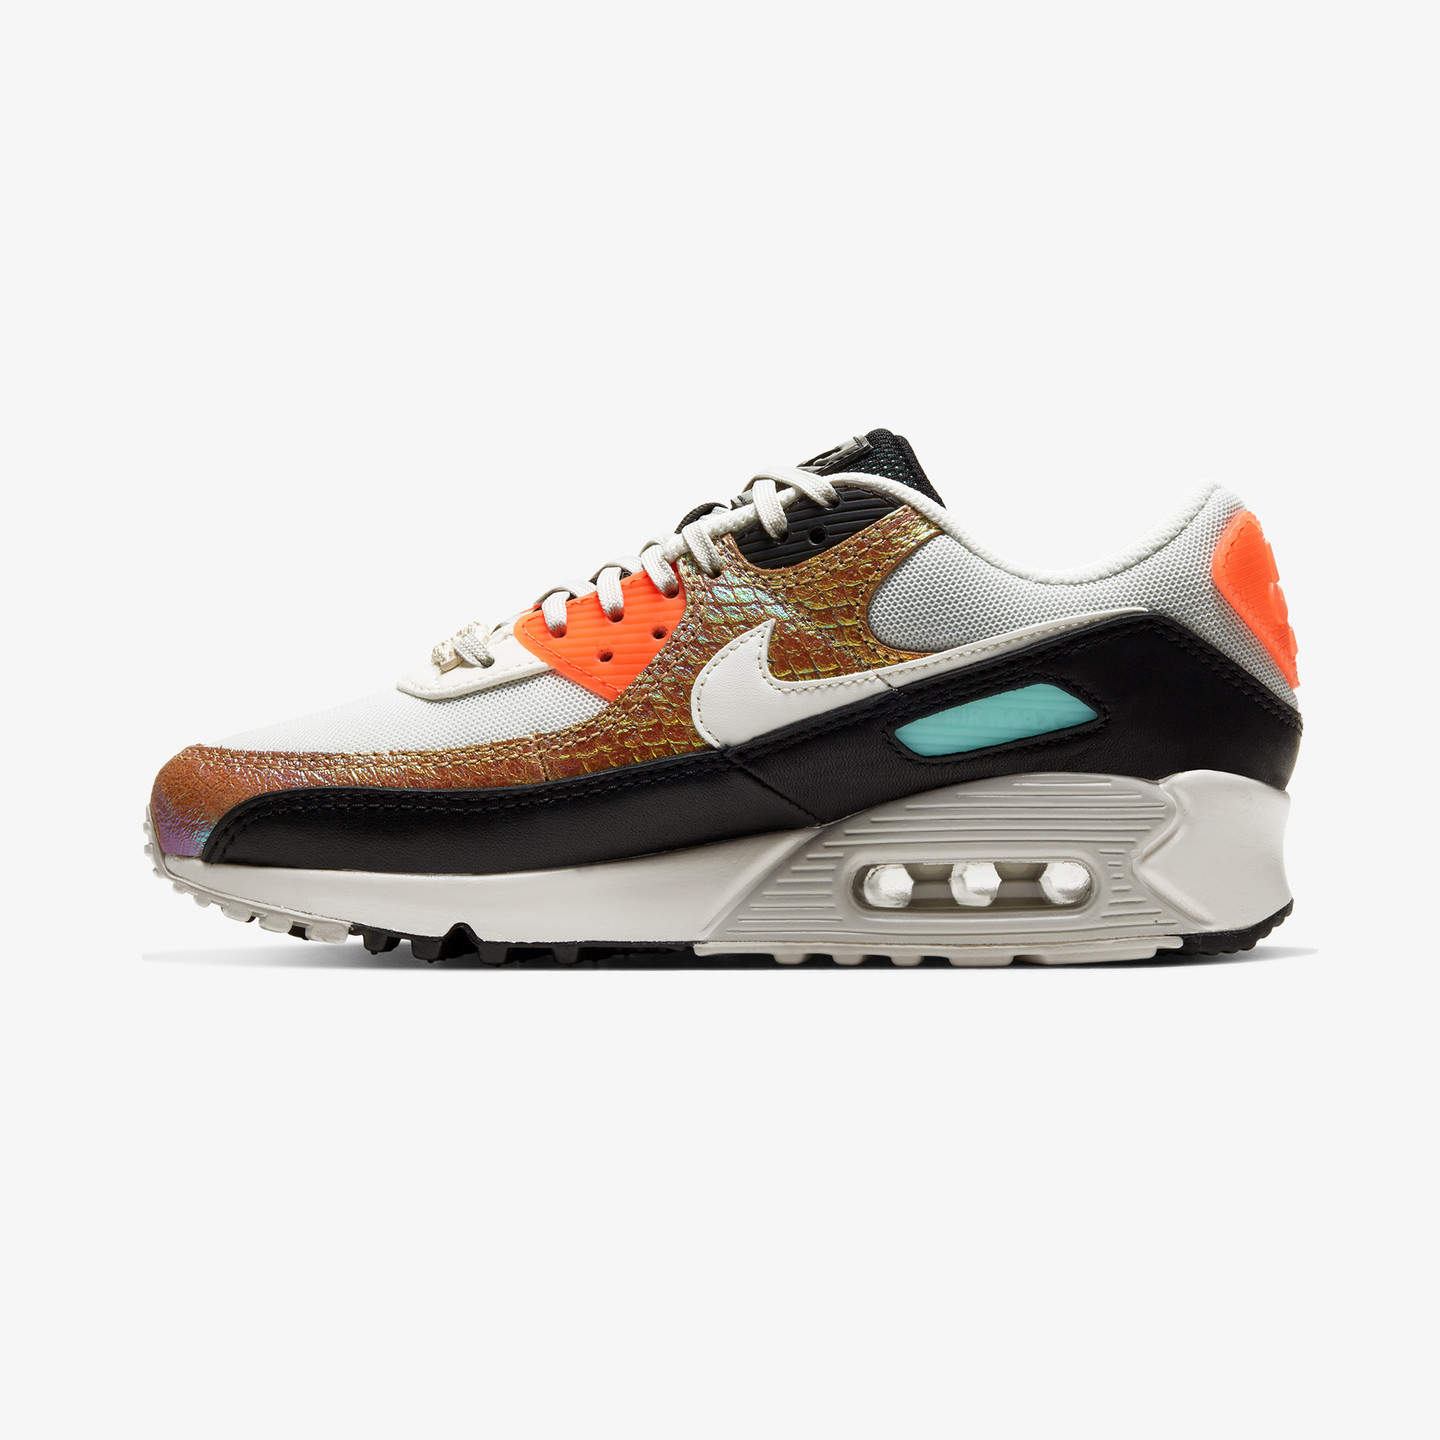 Nike Wmns Air Max 90 'Reptile' Light Bone / Hyper Crimson / Black / Sail CW2656-001